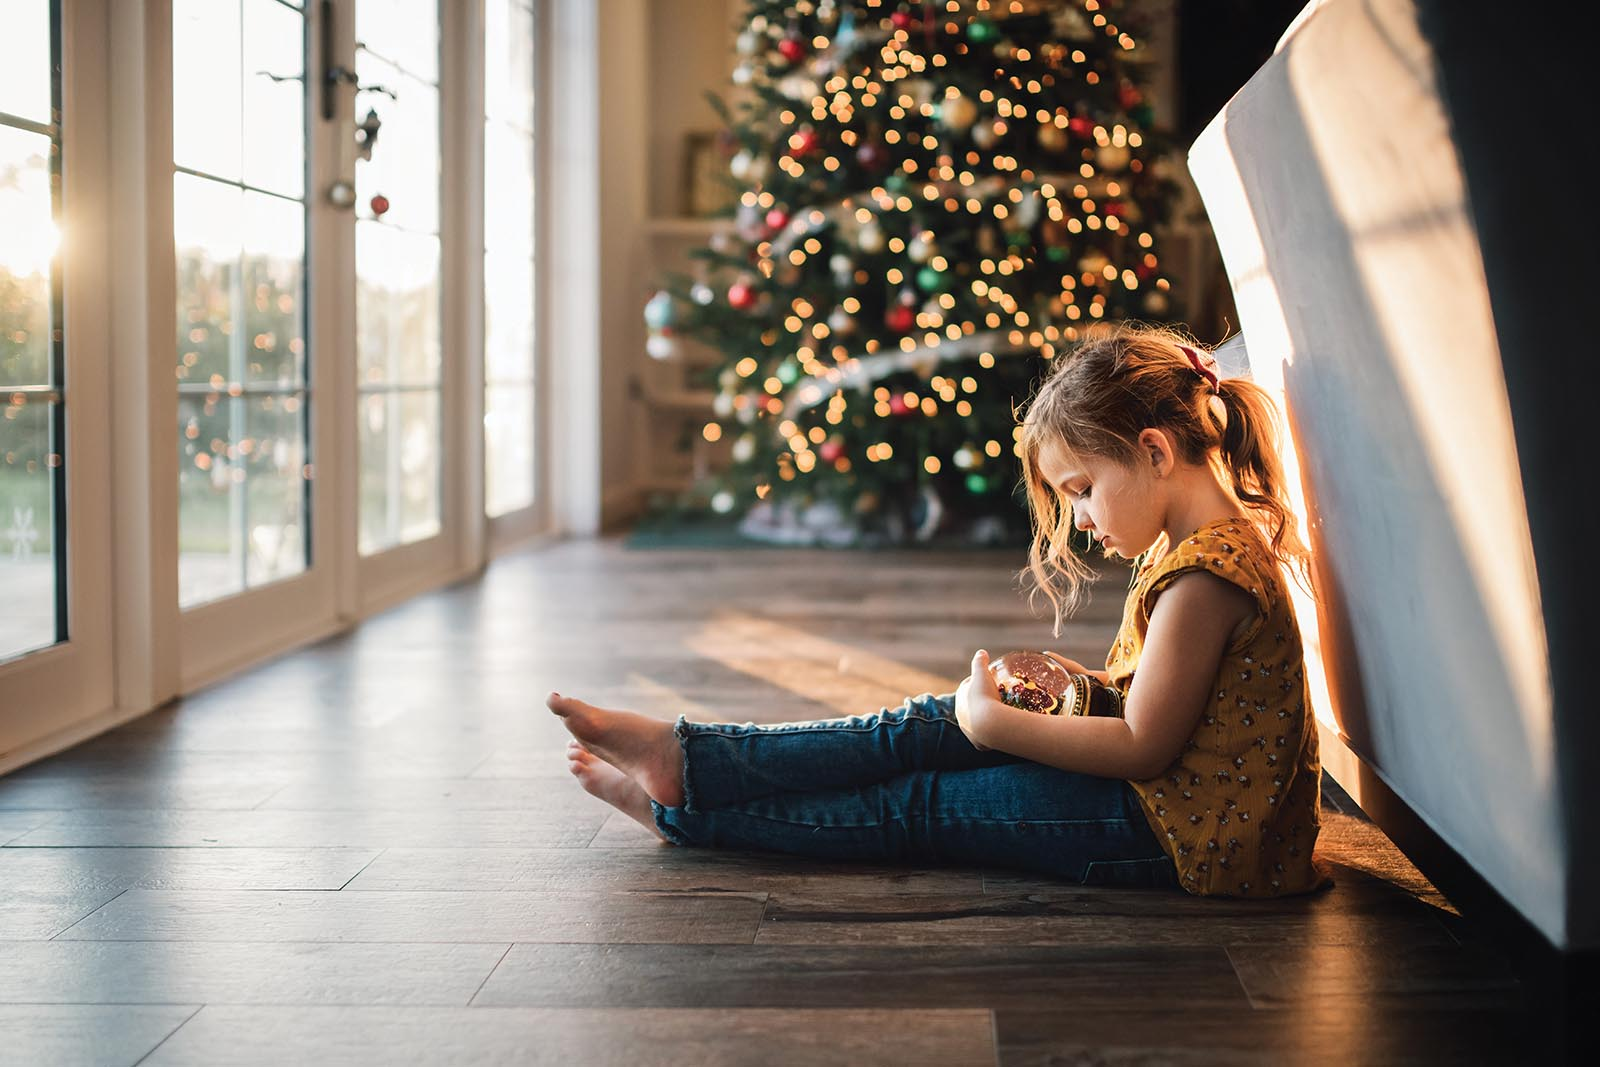 Girl sits in window light in front of Christmas tree